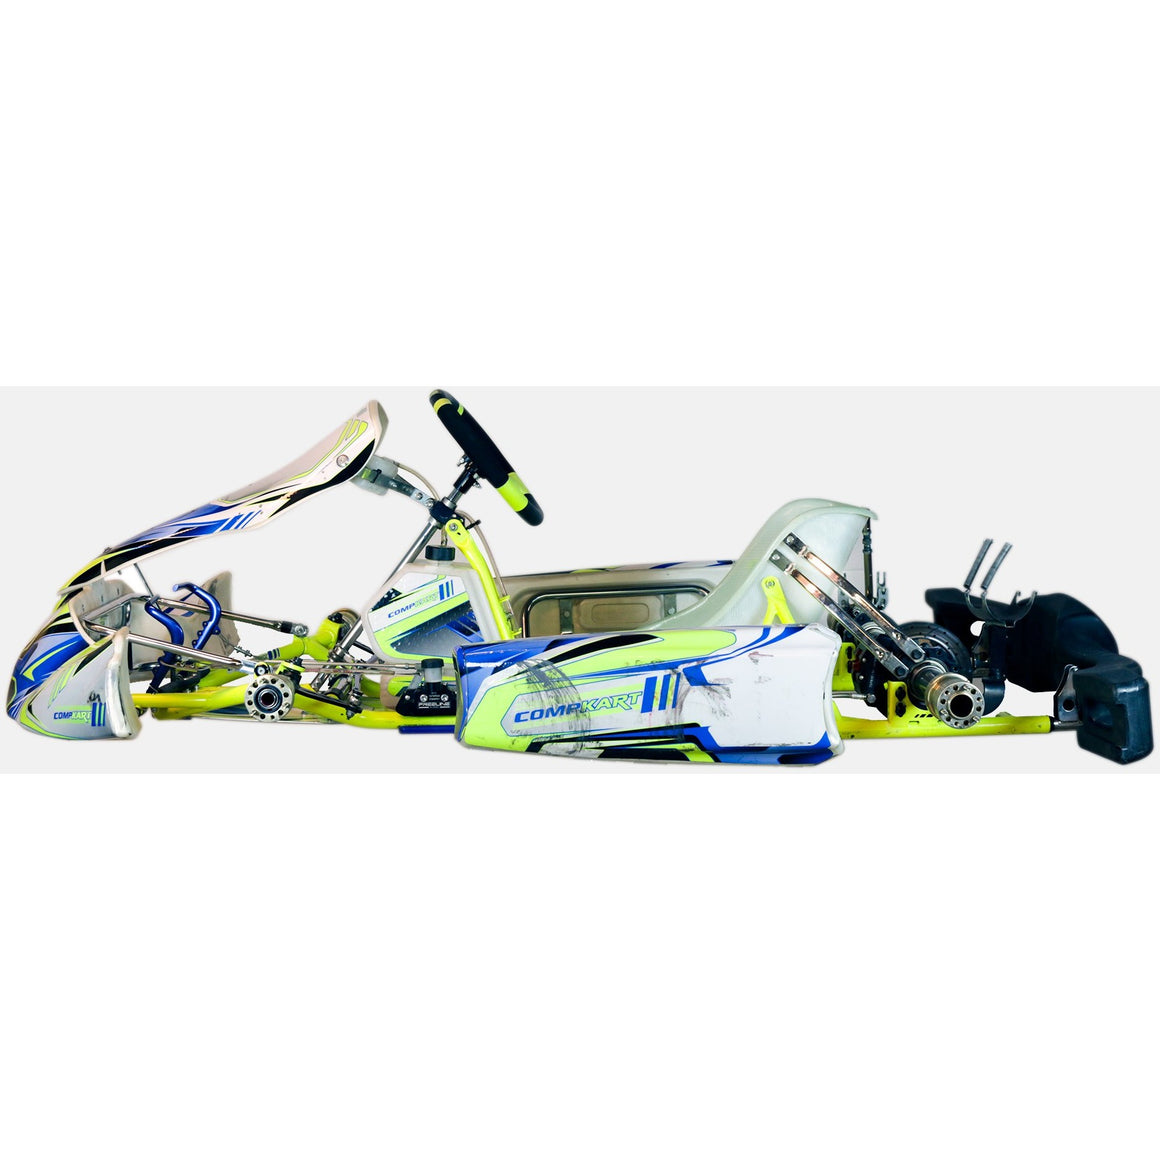 2017 Compkart Covert 3.0 Roller - 4 Races Old